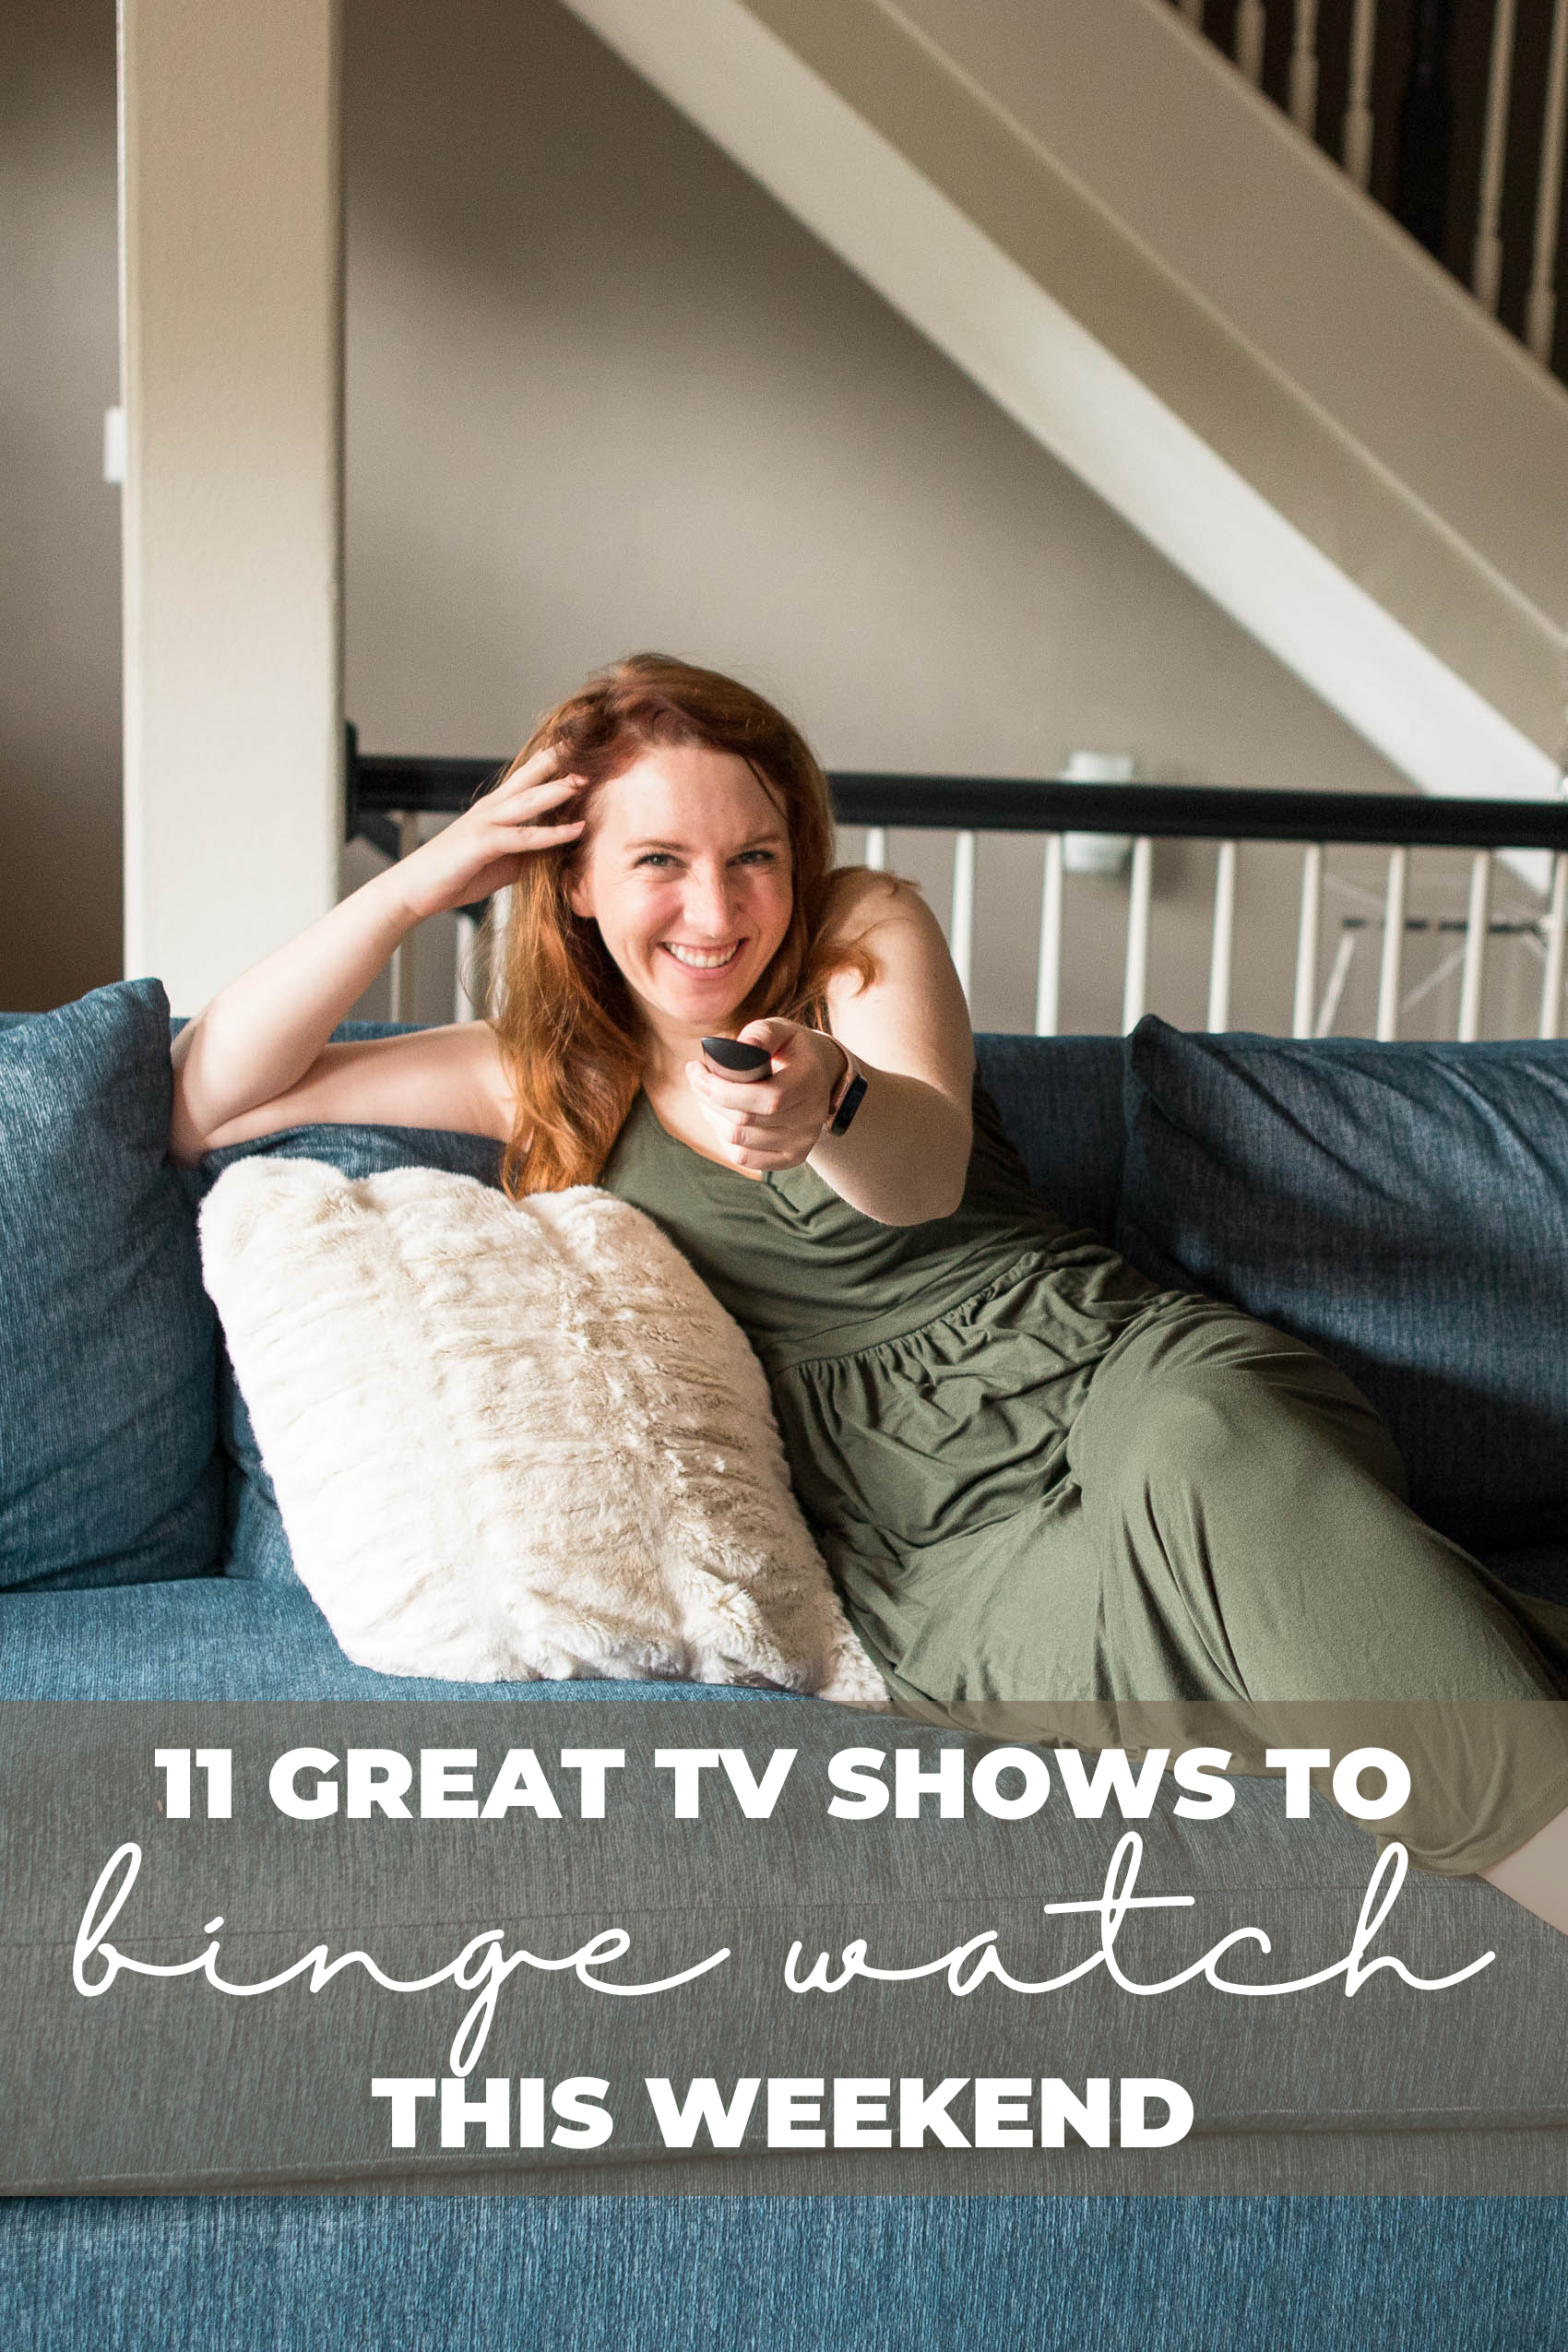 11 Best TV Shows to binge watch this weekend Pinterest graphic